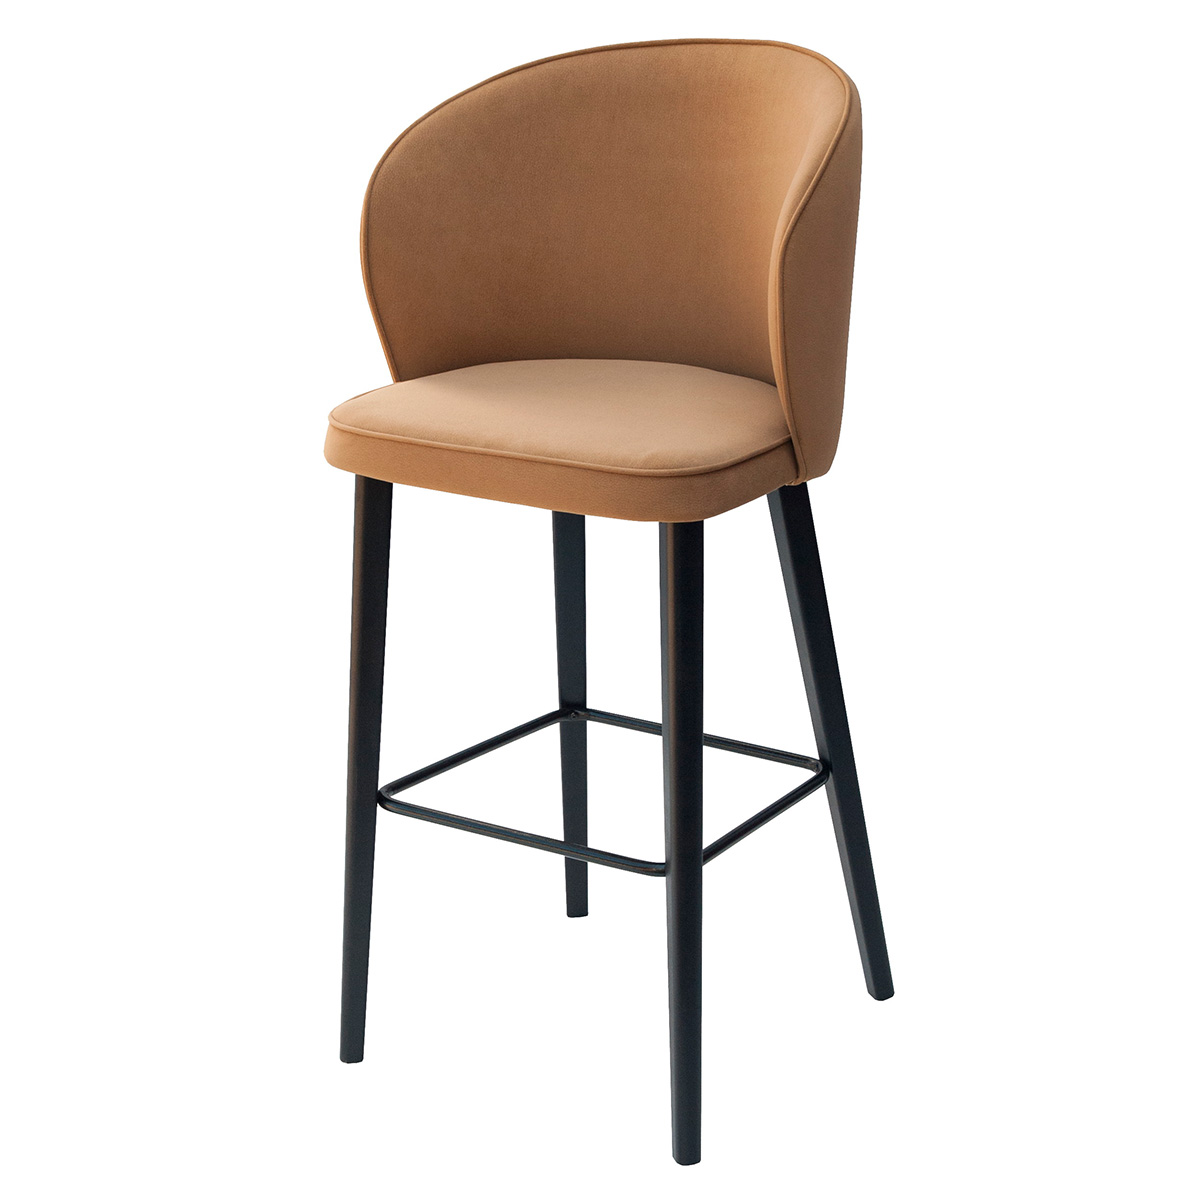 Comfortable Bar Stools Klara B045 Is Very Elegant Bar Stool With Comfortable Seat